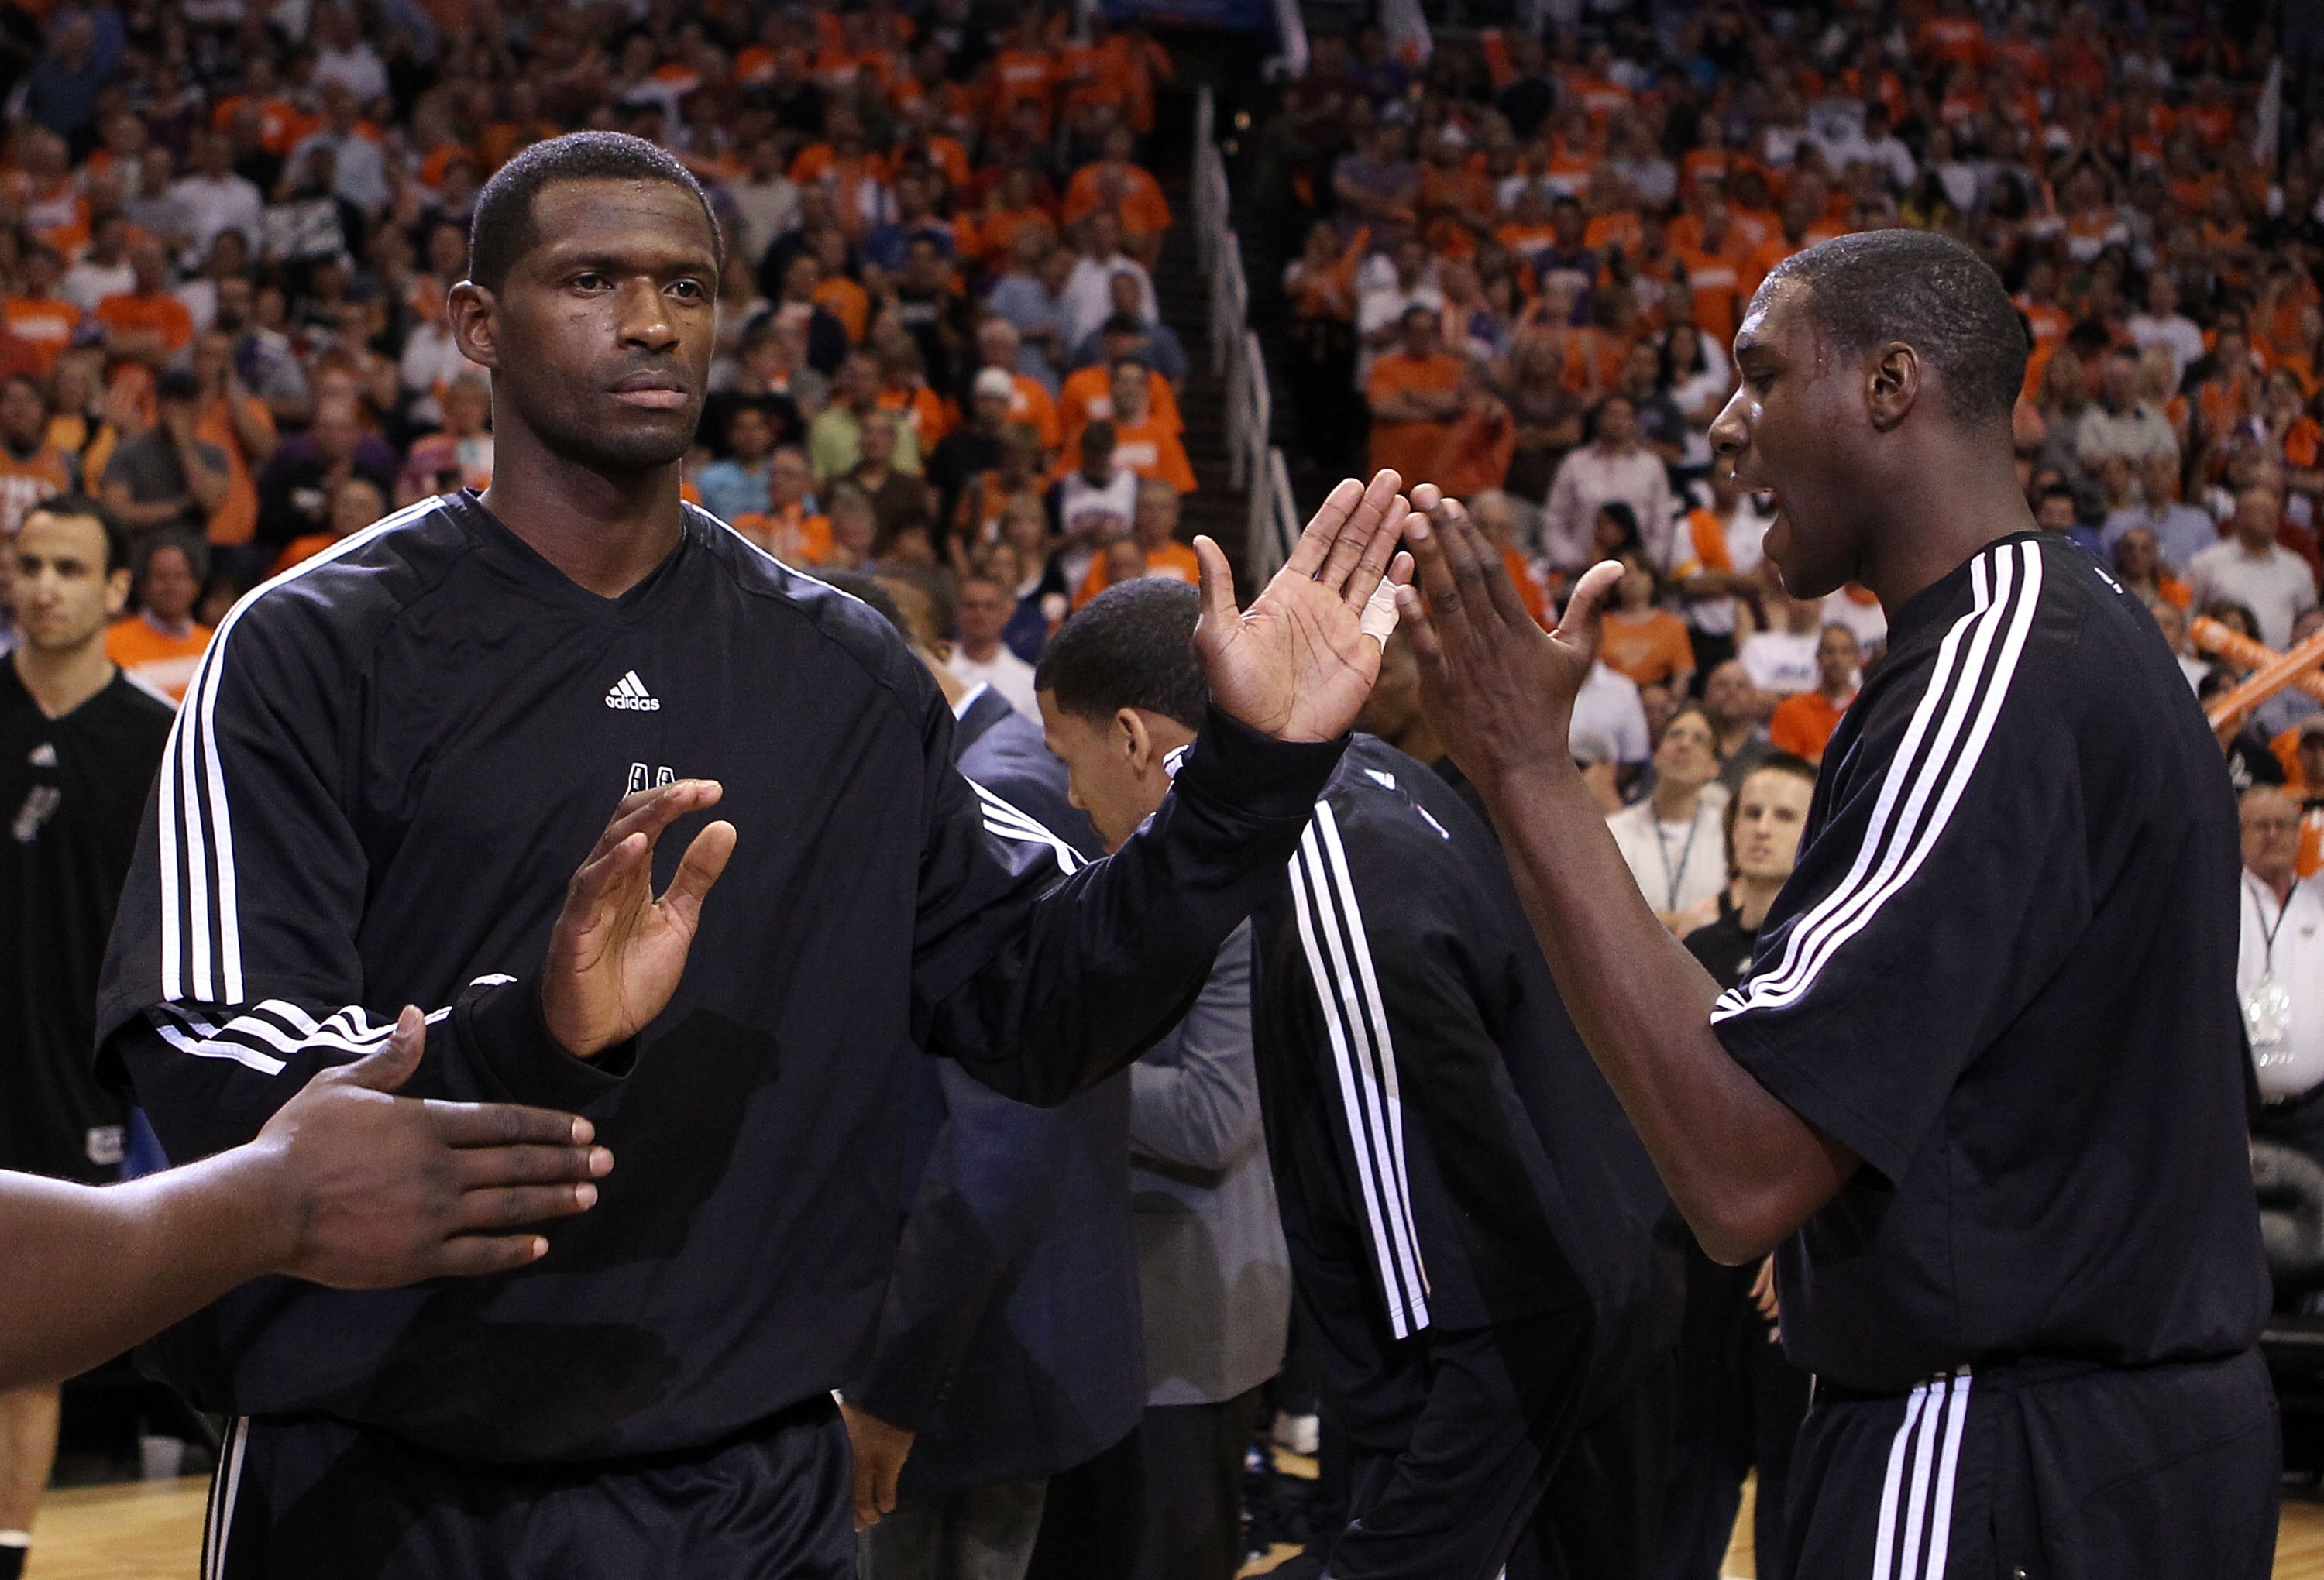 PHOENIX - MAY 03:  Antonio McDyess #34 of the San Antonio Spurs is introduced before Game One of the Western Conference Semifinals of the 2010 NBA Playoffs against the Phoenix Suns at US Airways Center on May 3, 2010 in Phoenix, Arizona. The Suns defeated